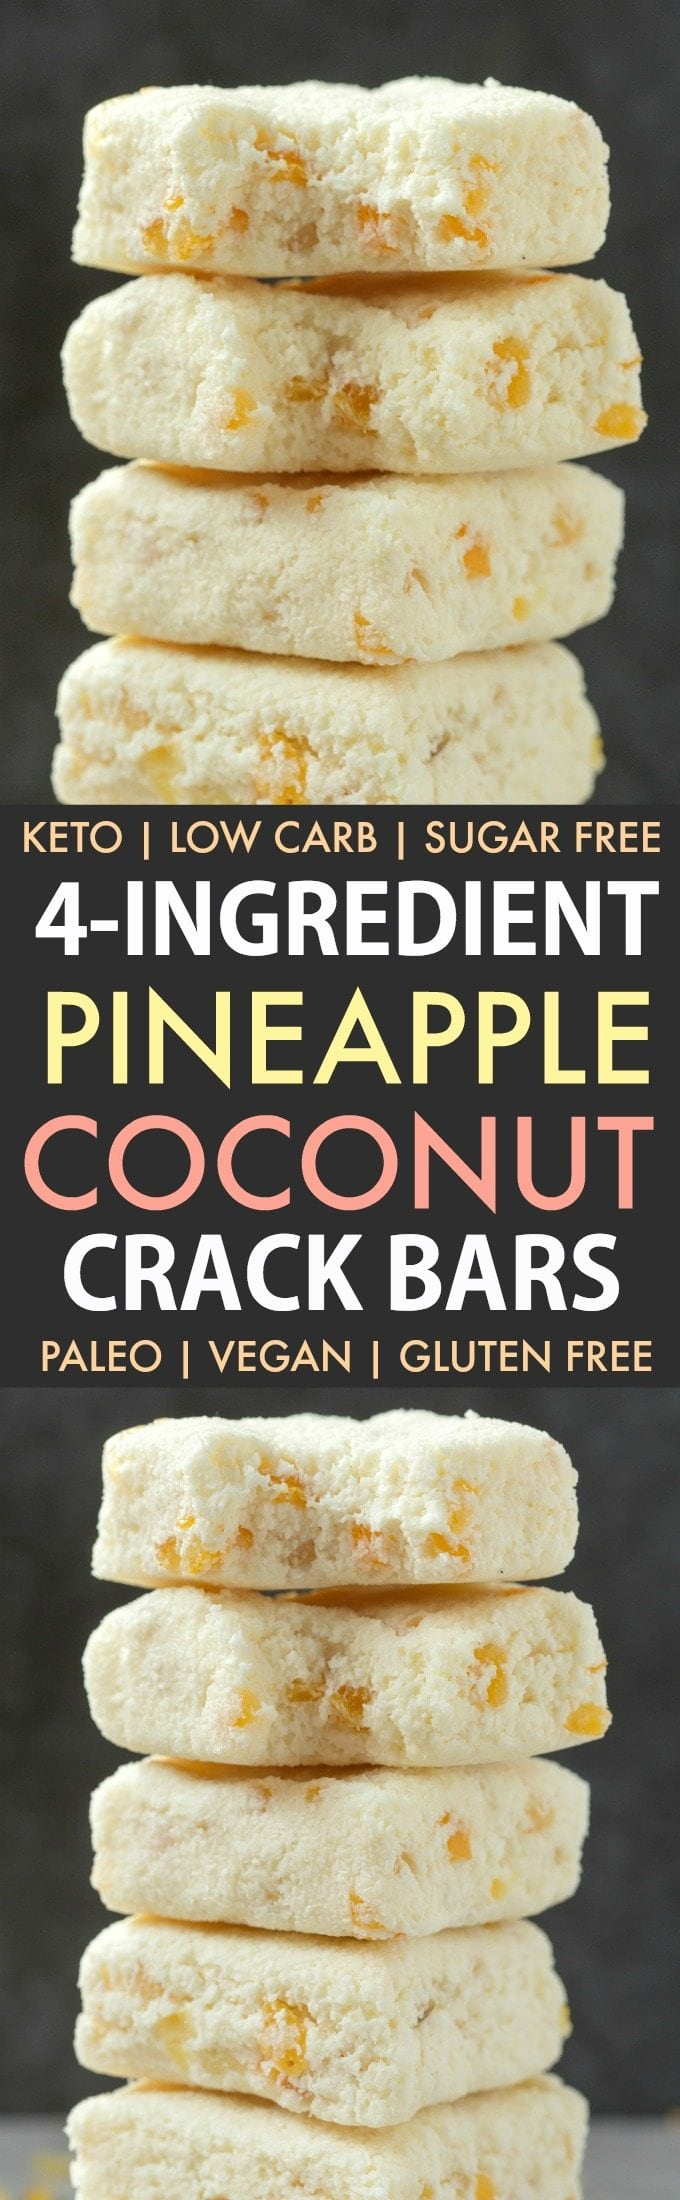 Healthy No Bake Pineapple Coconut Crack Bars (Keto, Paleo, Vegan, Sugar Free)- An easy 4-ingredient recipe for tropical pineapple coconut bars ready in 5 minutes- The perfect ketogenic friendly low carb dessert or snack! #ketorecipe #nobake #tropical #lowcarb #sugarfree #ketodessert | Recipe on thebigmansworld.com